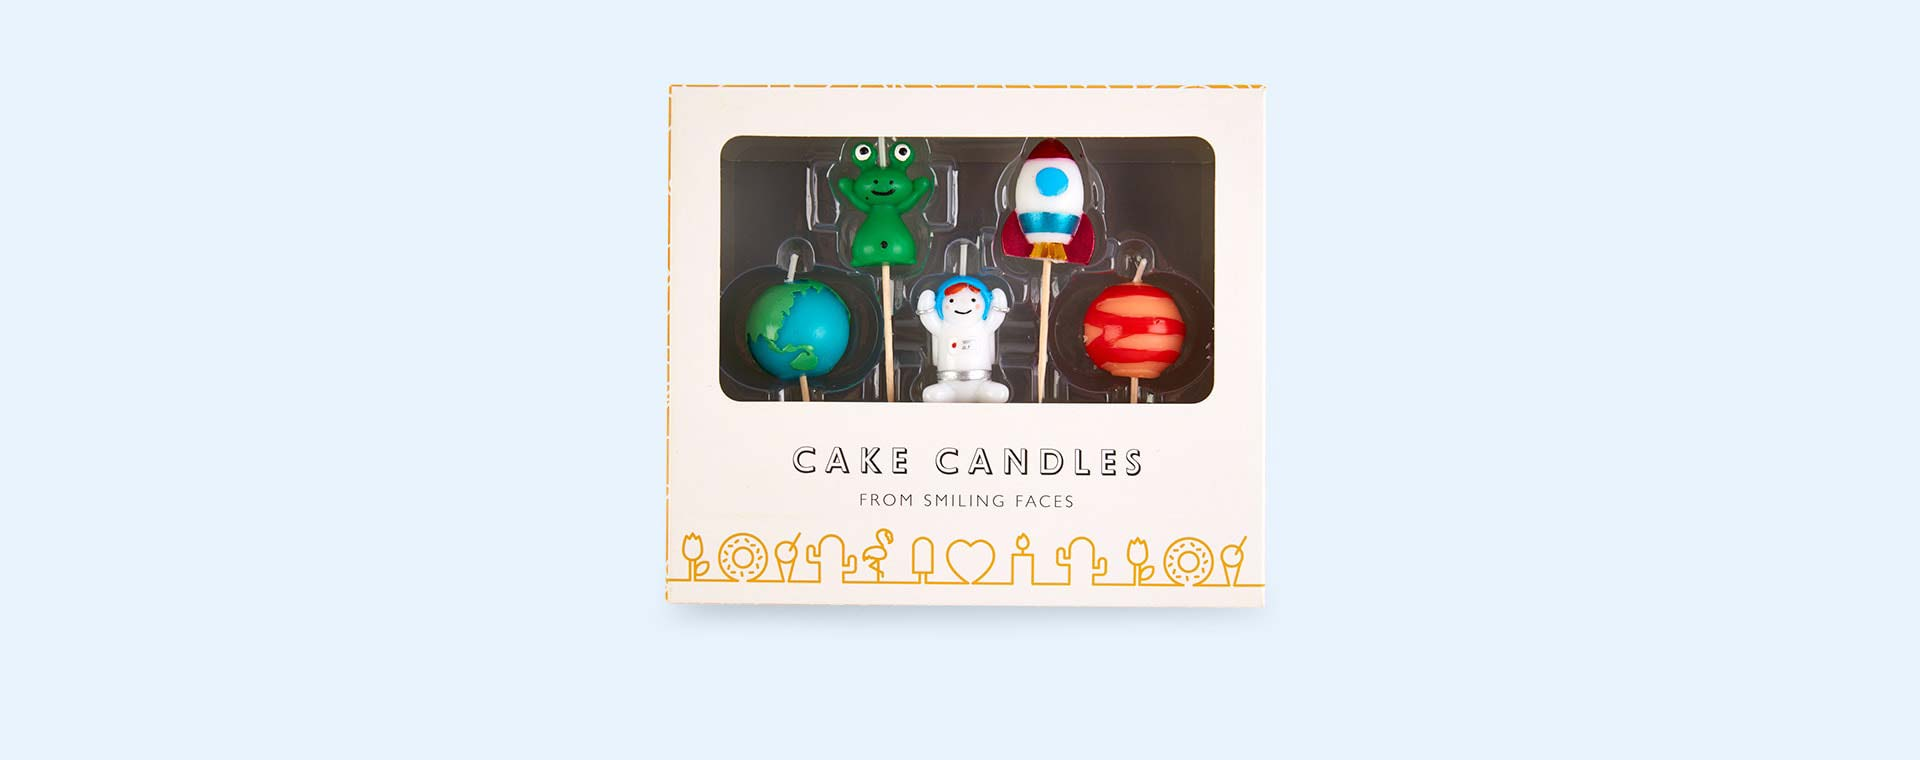 Space Smiling Faces Space Candles